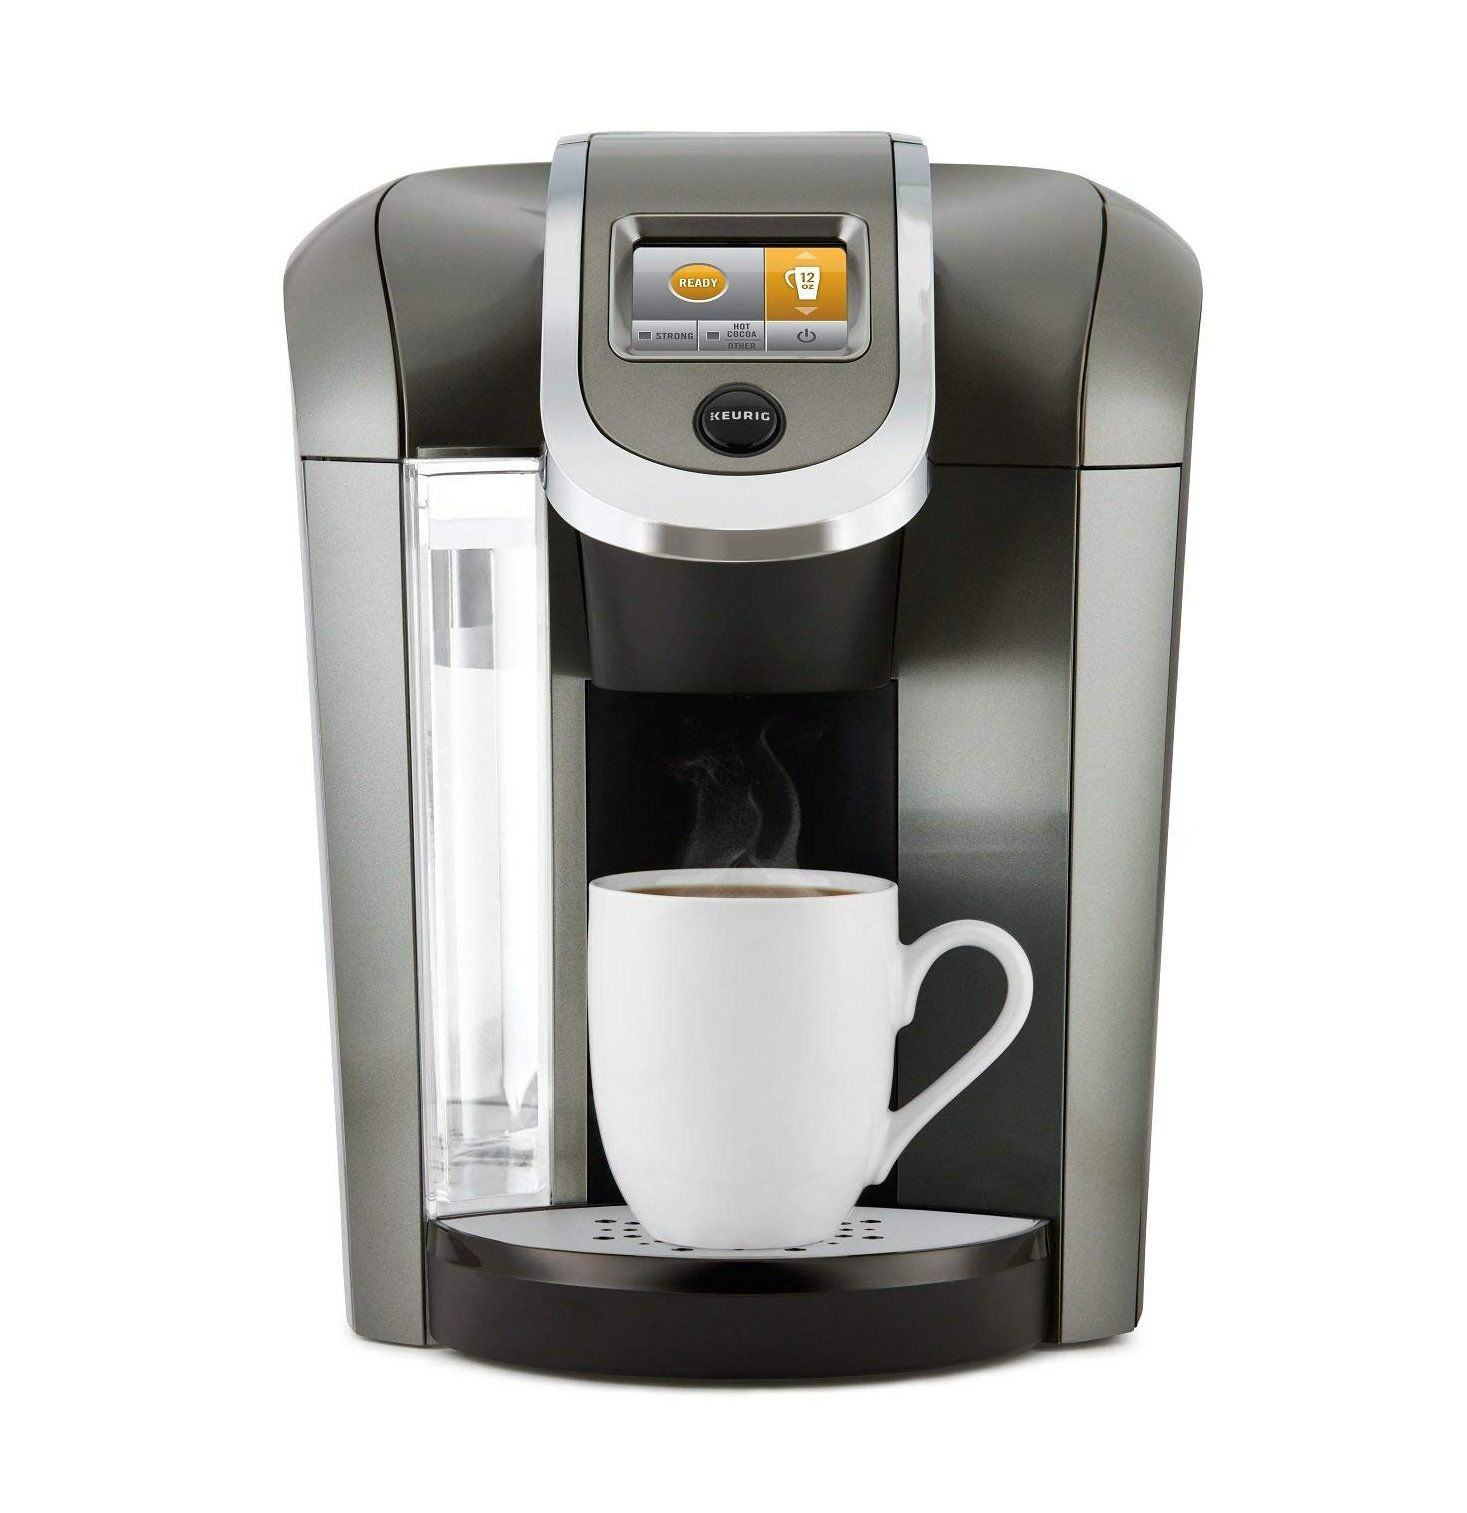 Best Single Serve Coffee Makers Keurig, Nespresso, Mr